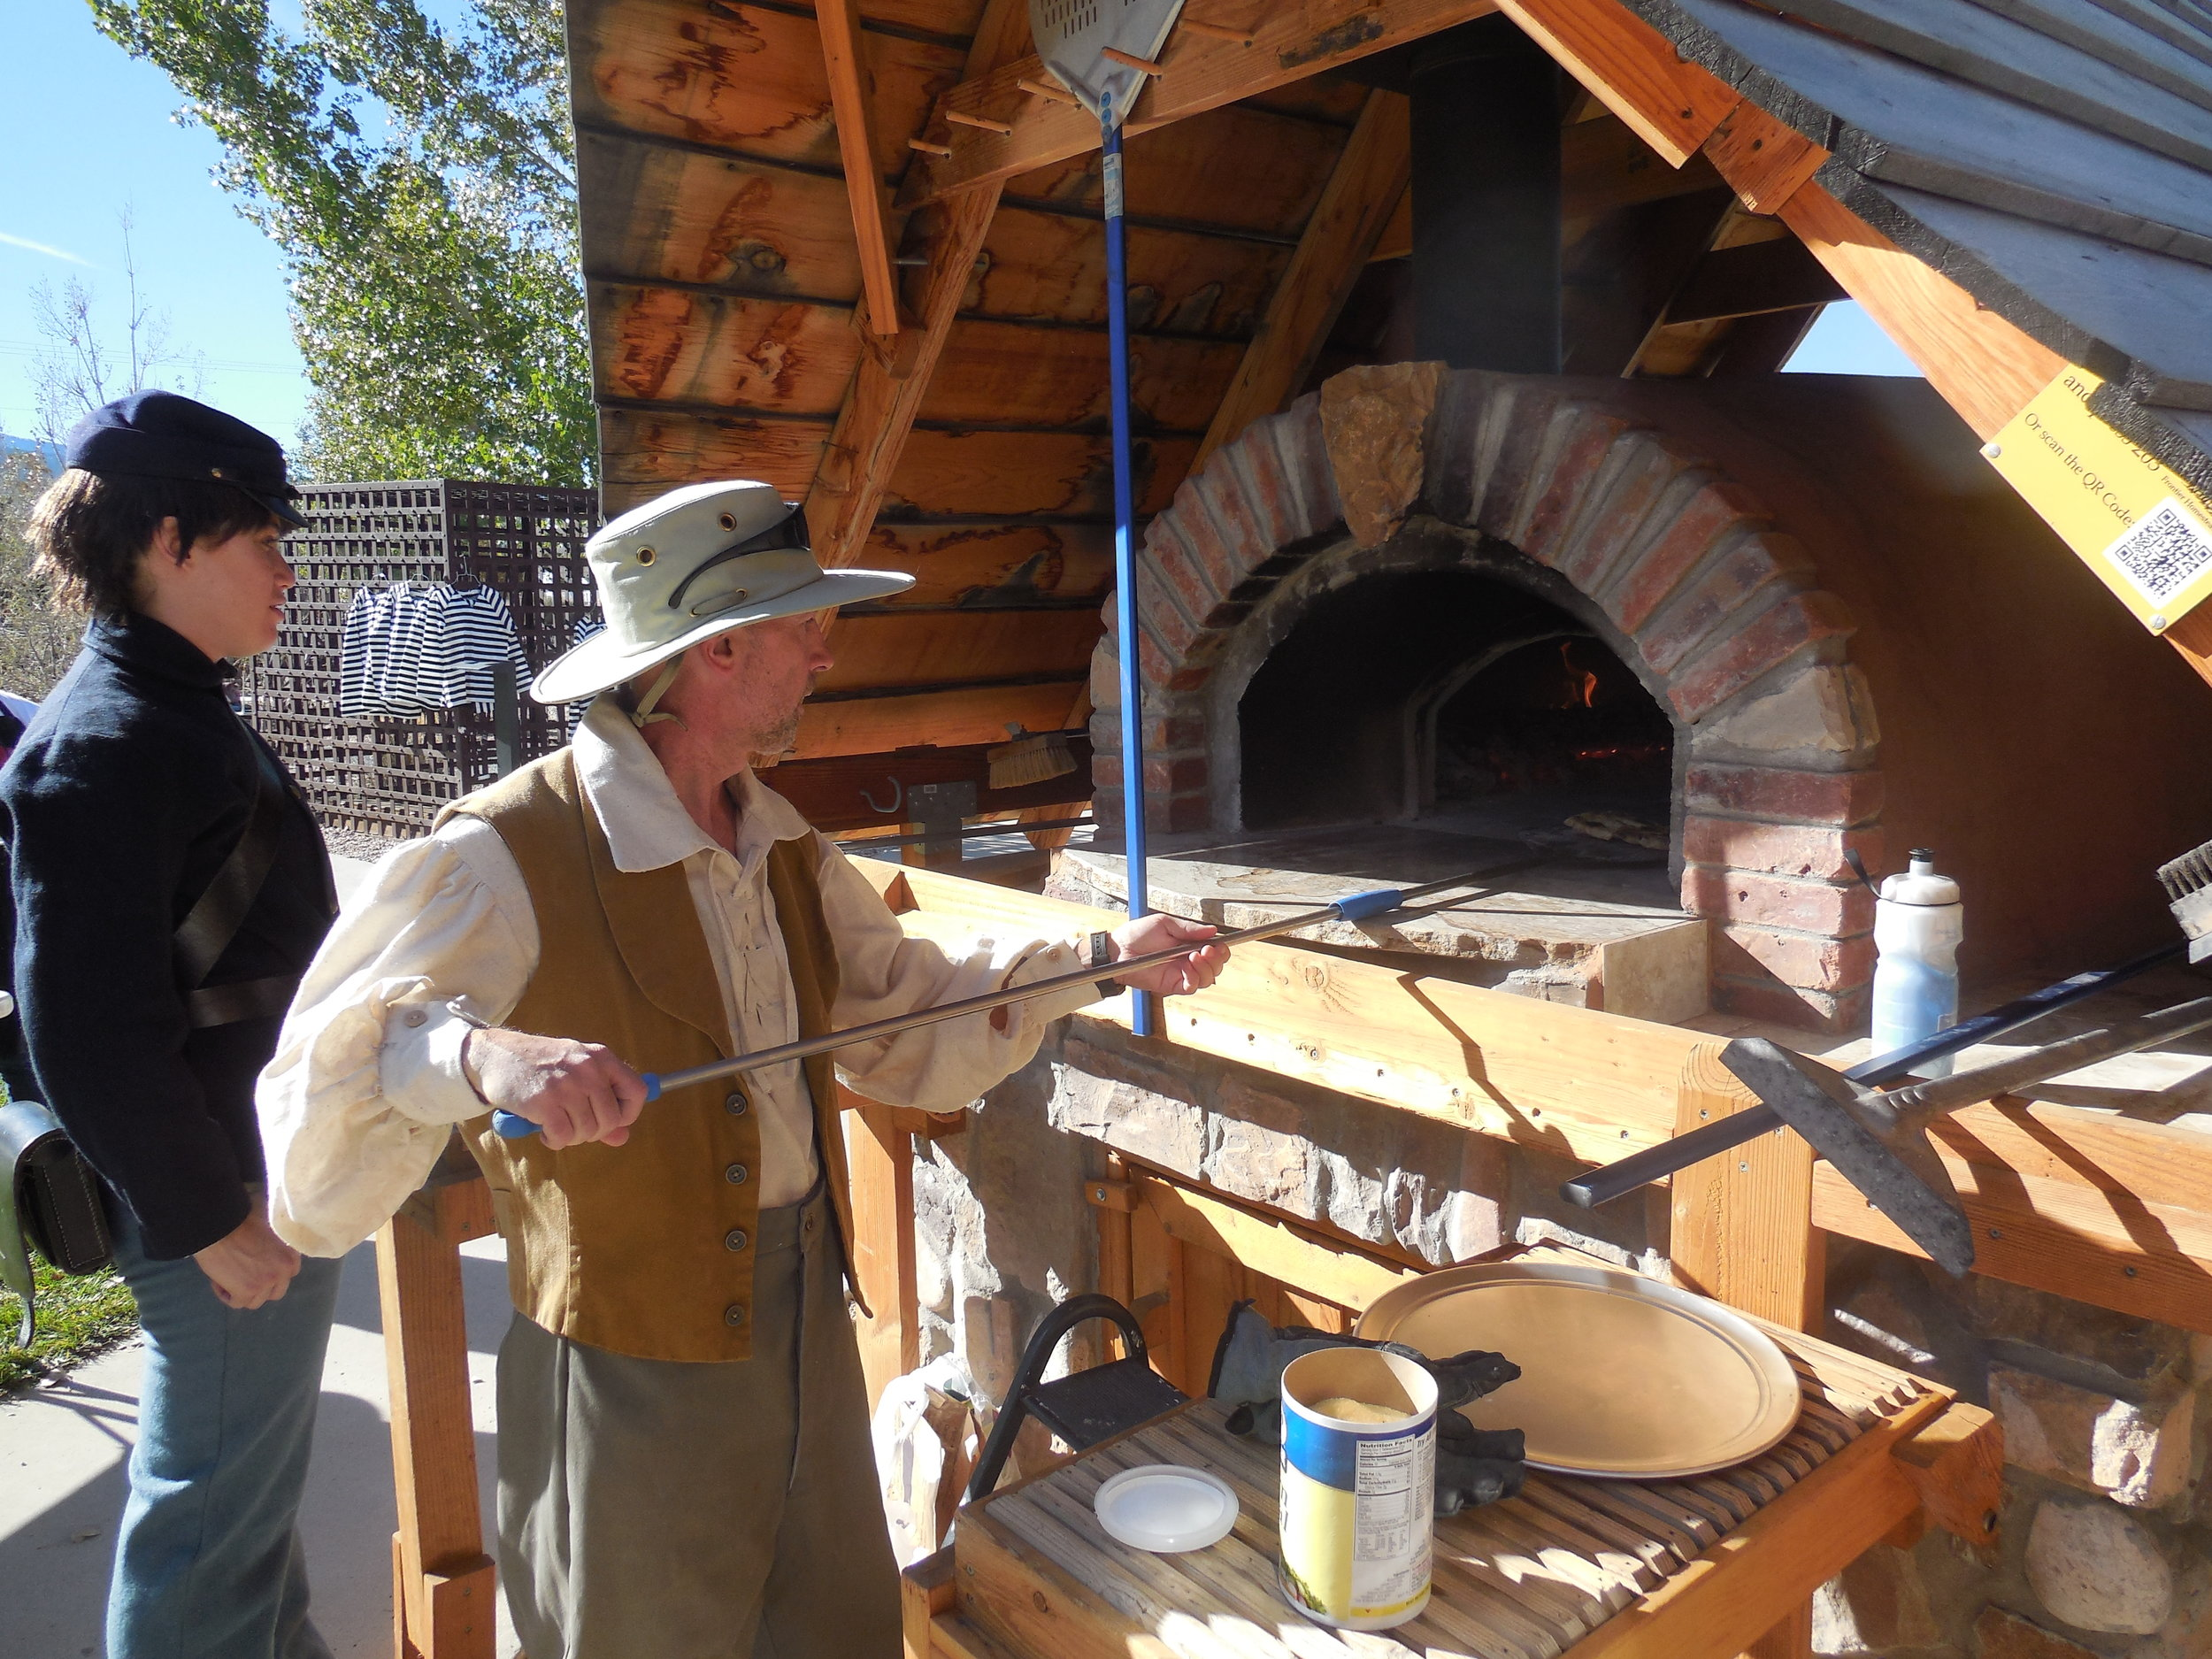 Tasty treats from the earth oven at Iron Mission Days.